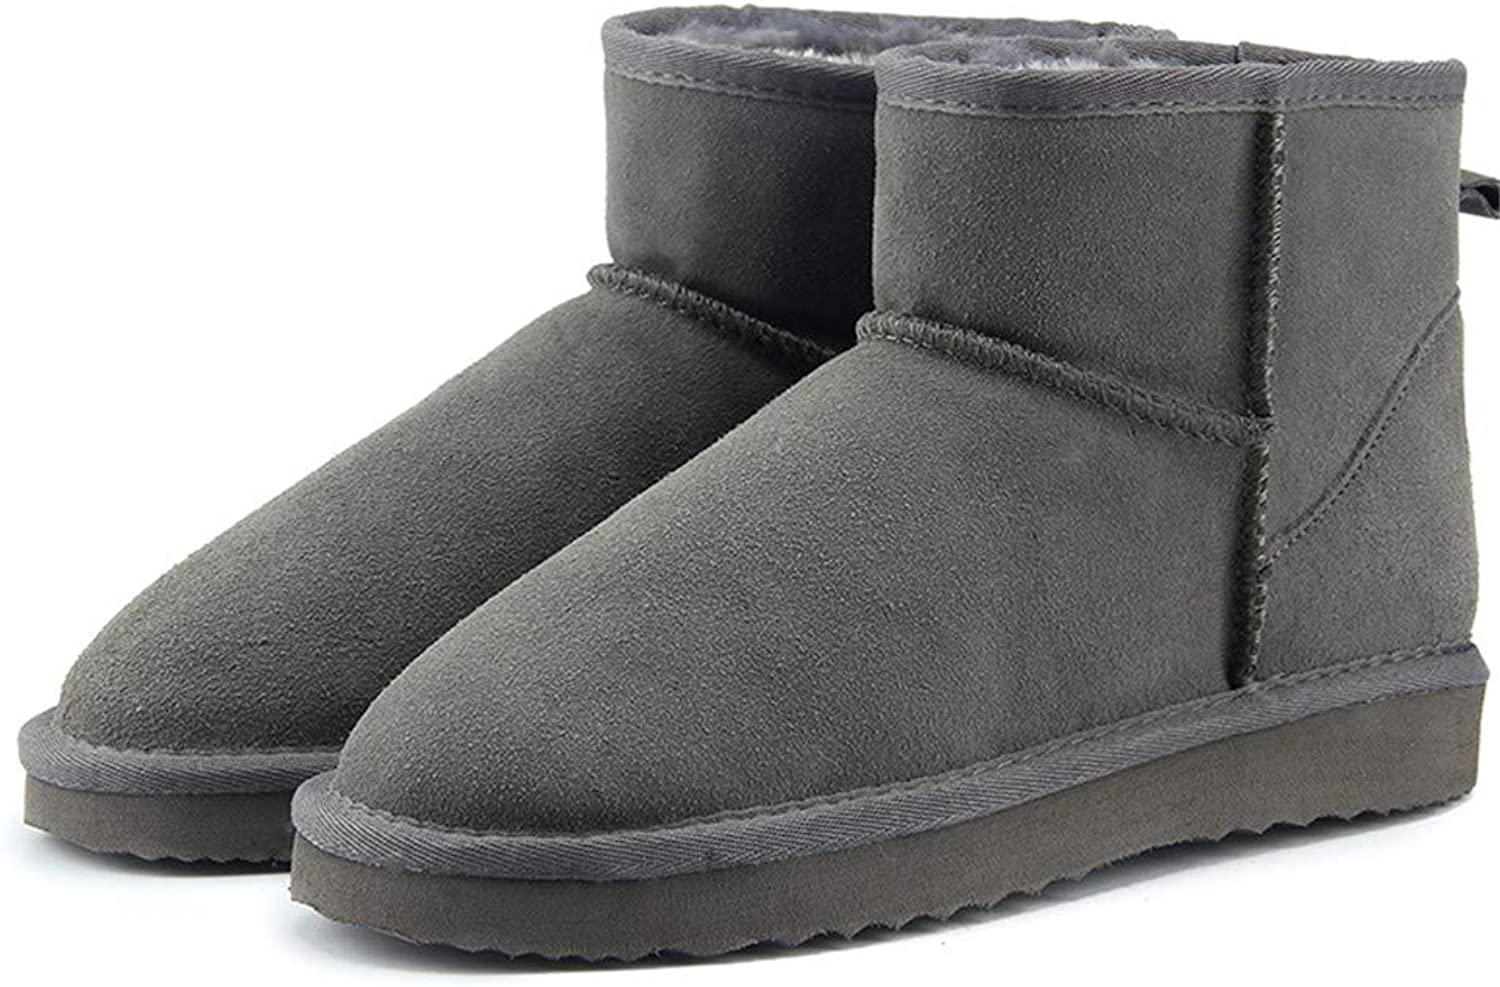 Newstarshop Australia Women Snow Boots Ankle Boots Warm Winter Boots Large Size 34-44